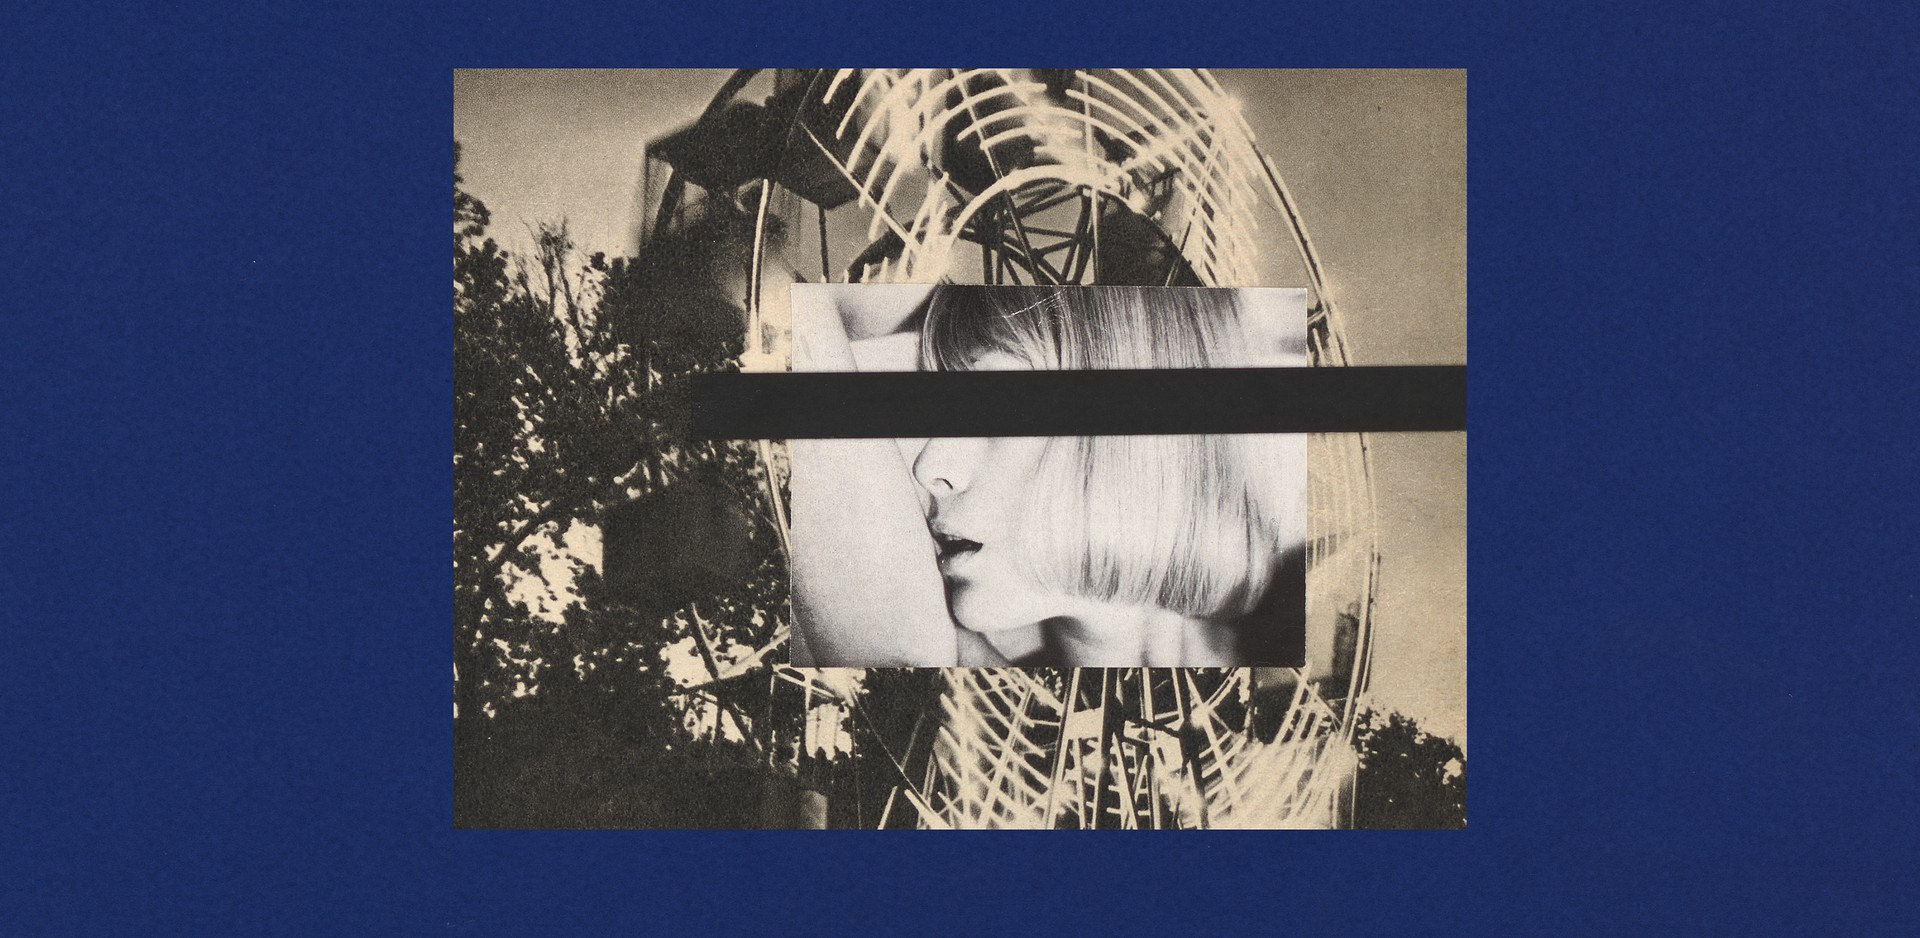 Black-and-white images of a woman and a spinning Ferris wheel on cobalt blue